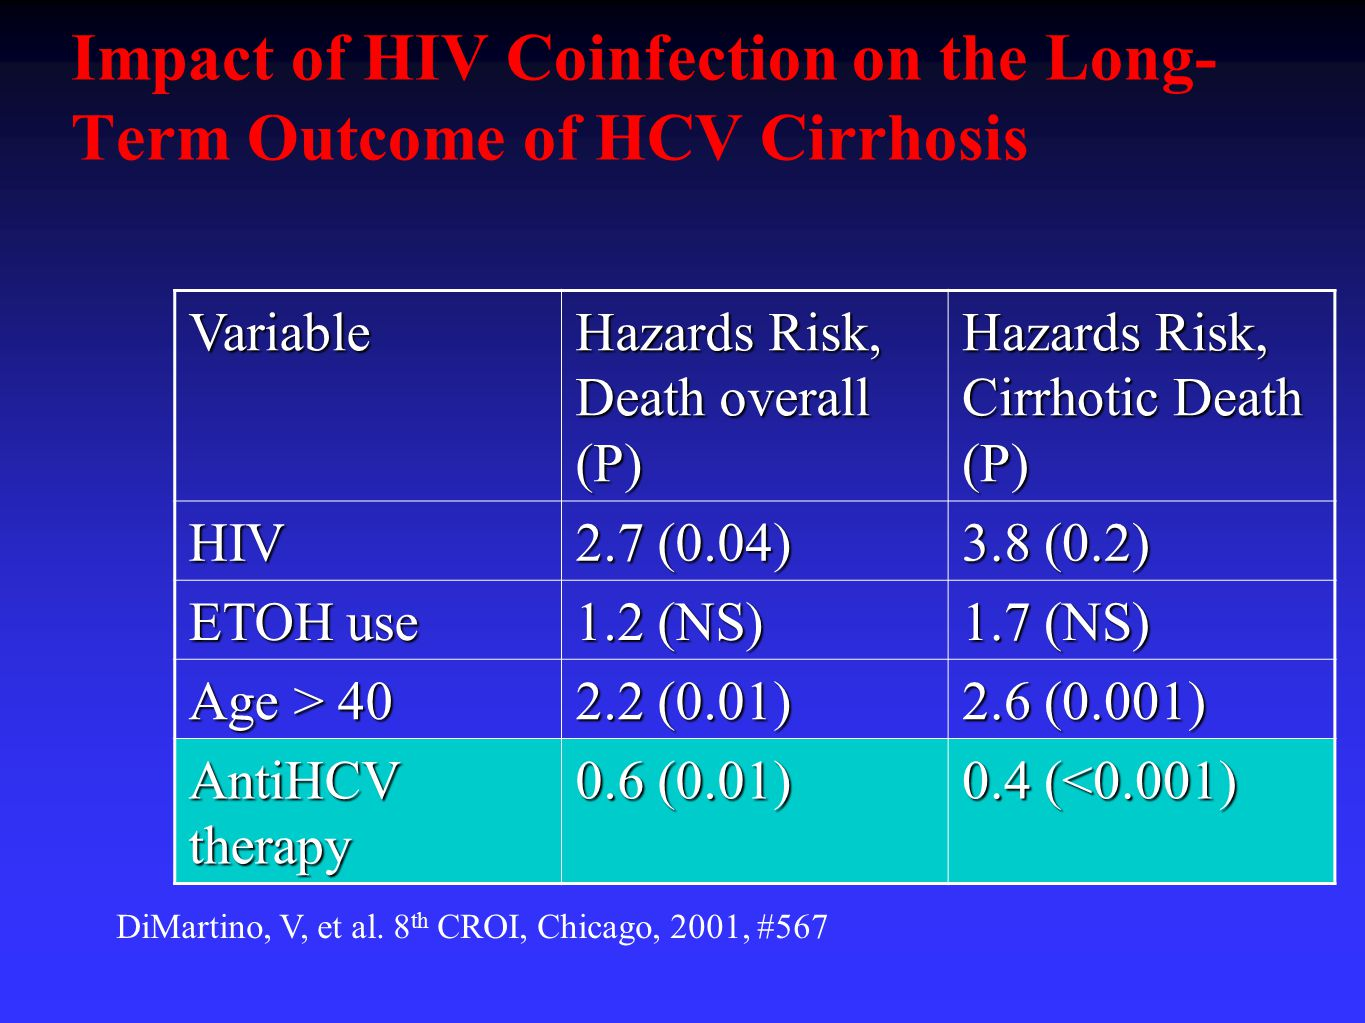 Impact of HIV Coinfection on the Long- Term Outcome of HCV Cirrhosis Variable Hazards Risk, Death overall (P) Hazards Risk, Cirrhotic Death (P) HIV 2.7 (0.04) 3.8 (0.2) ETOH use 1.2 (NS) 1.7 (NS) Age > 40 2.2 (0.01) 2.6 (0.001) AntiHCV therapy 0.6 (0.01) 0.4 (<0.001) DiMartino, V, et al.